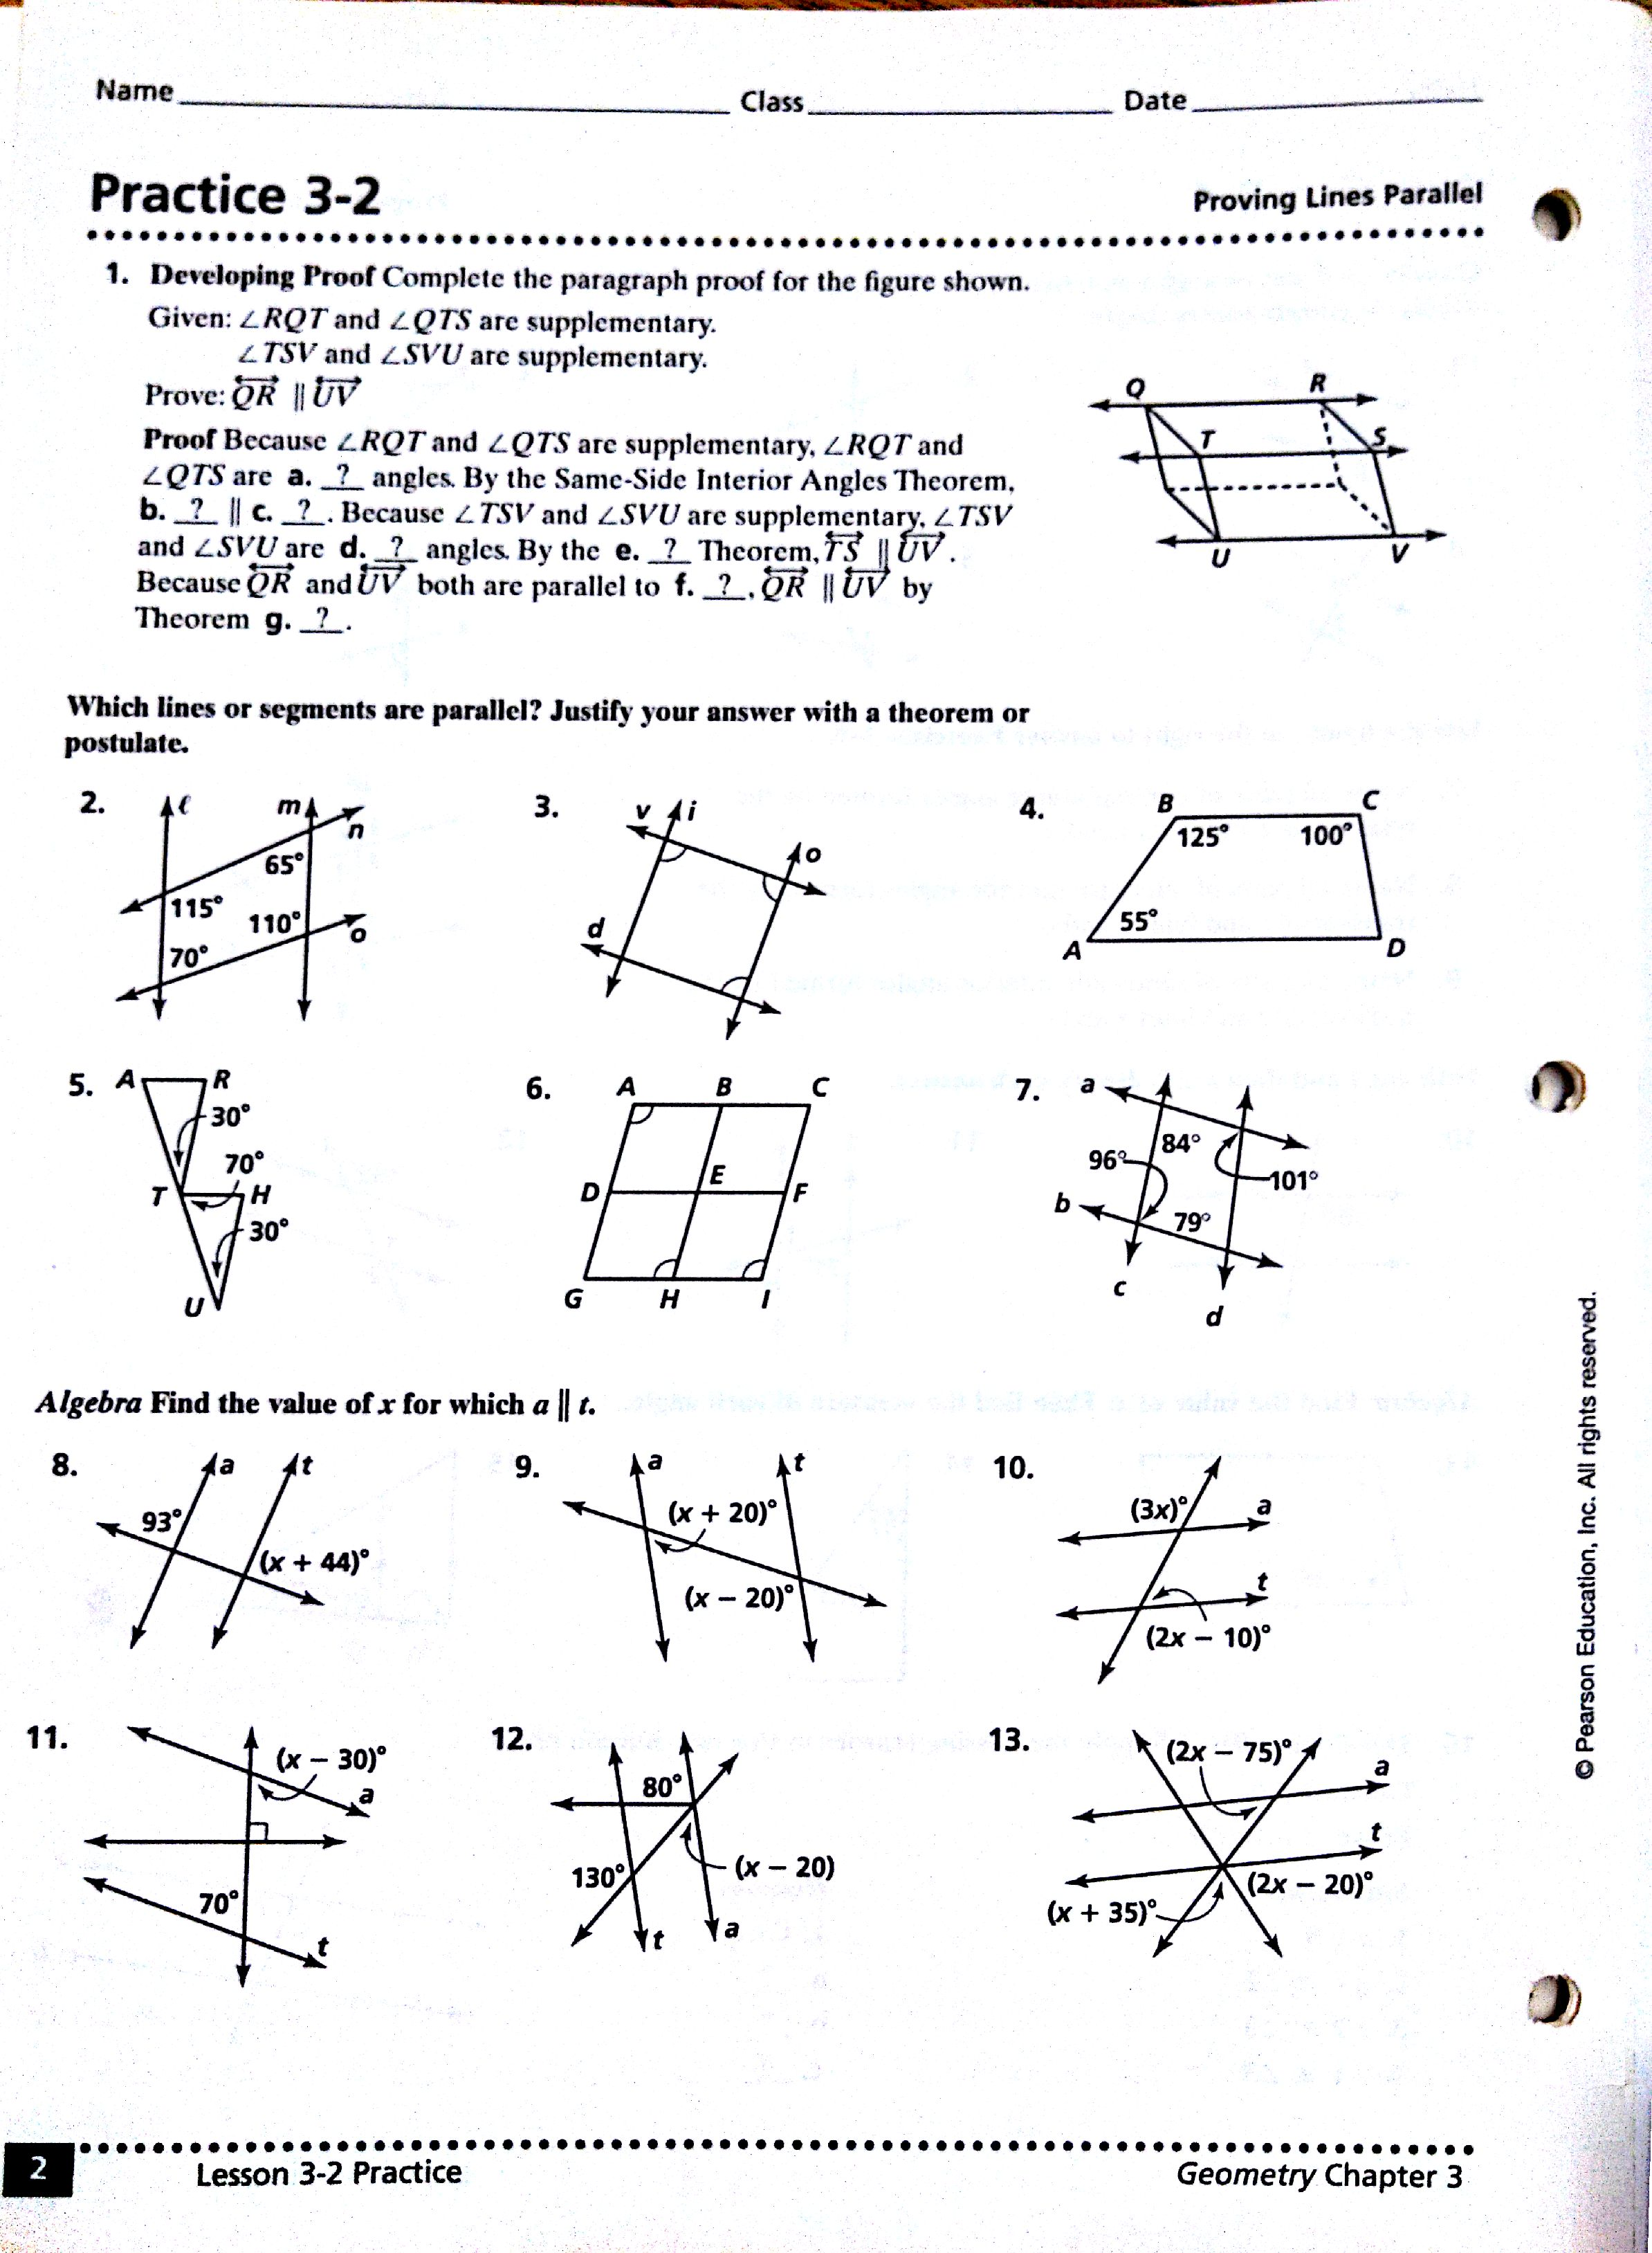 Eureka math homework helper grade 5 module 1